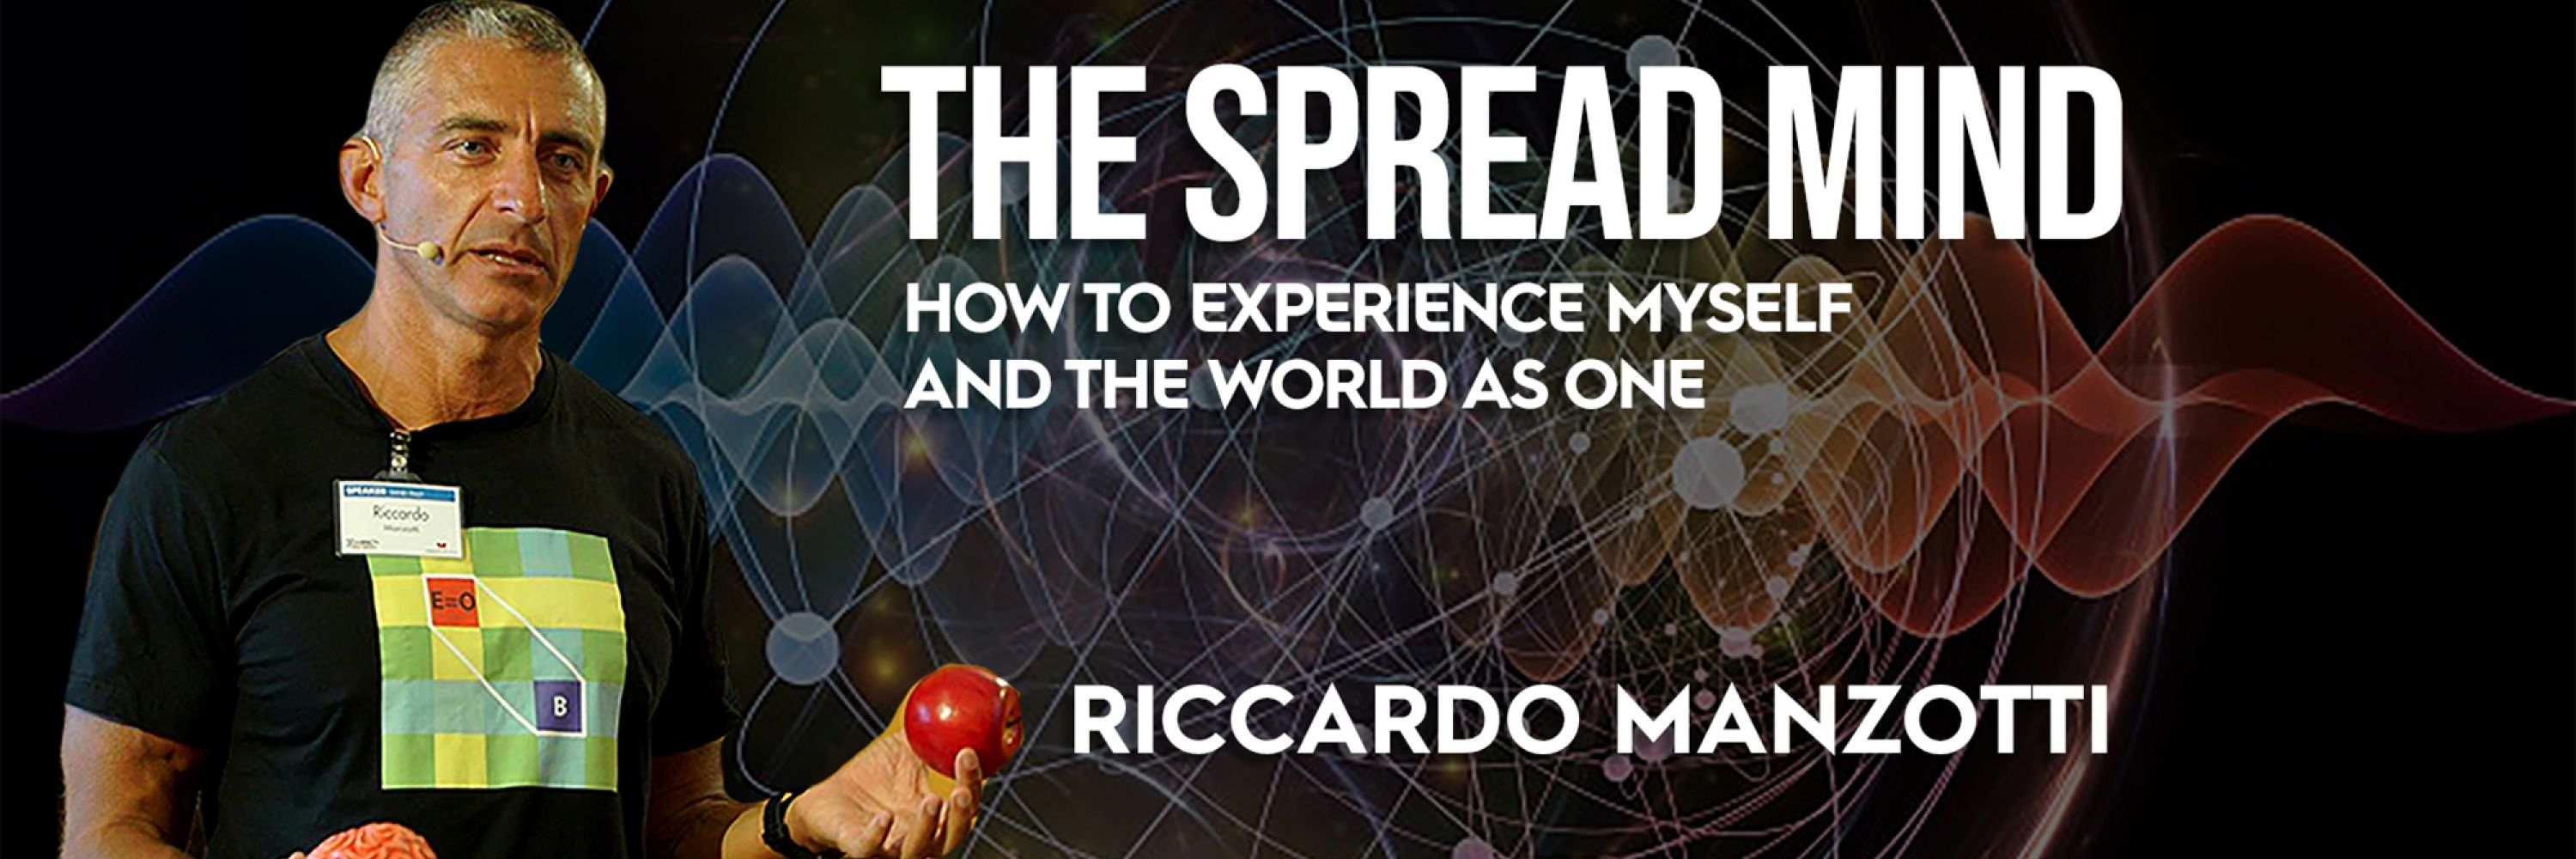 The Spread Mind: How to experience myself and the world as one